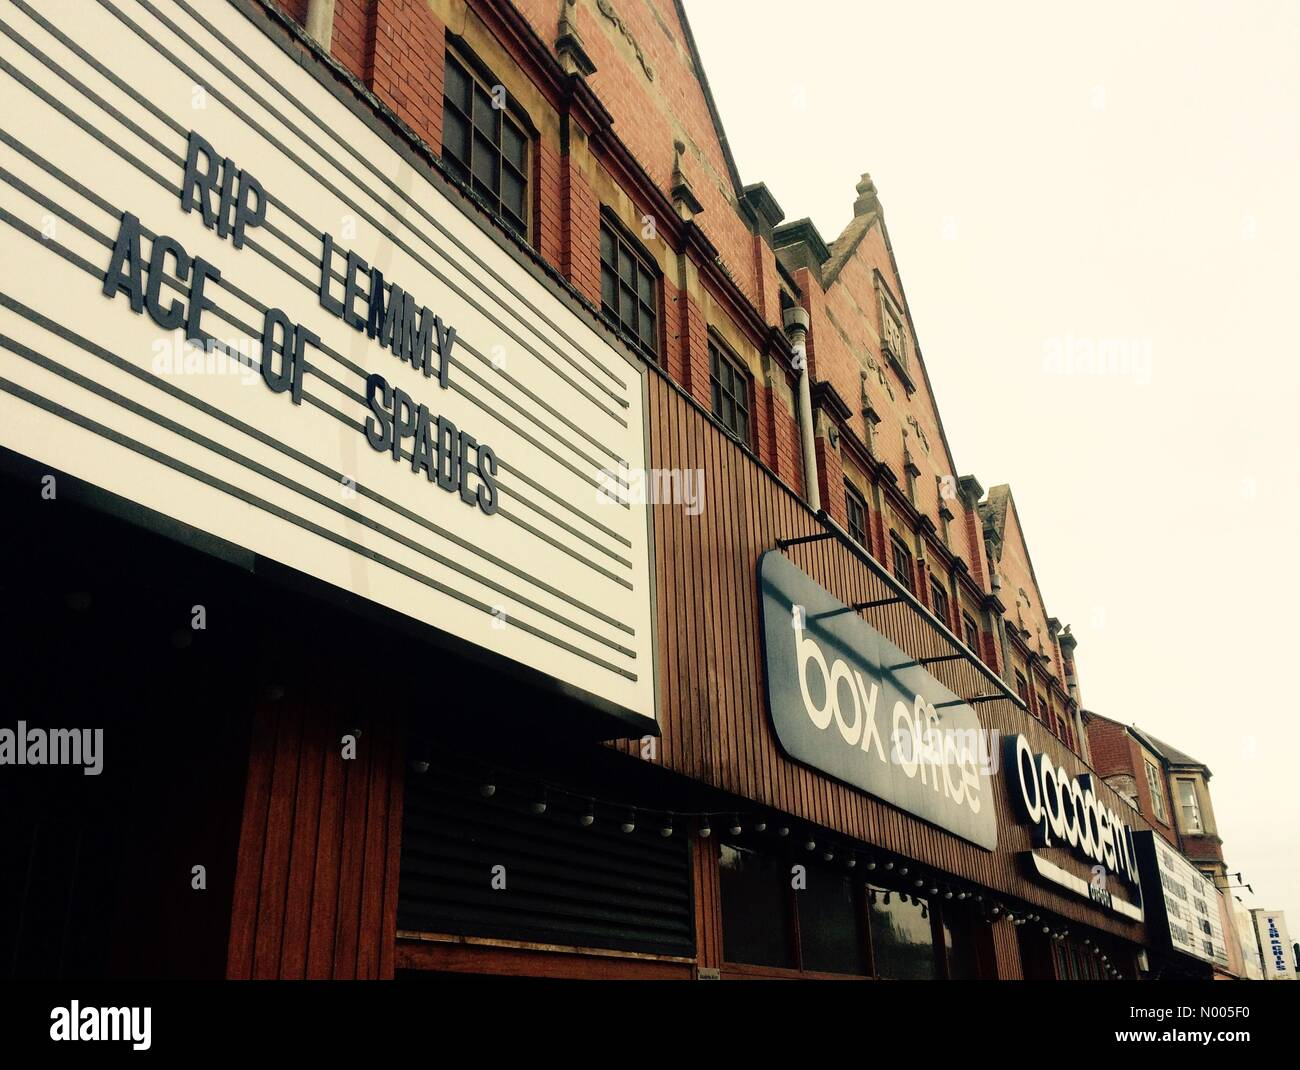 Oxford, UK. 30th Dec, 2015. Tribute to Motorhead frontman Lemmy Kilmister at Oxford's O2 Academy on Cowley Rd, - Stock Image